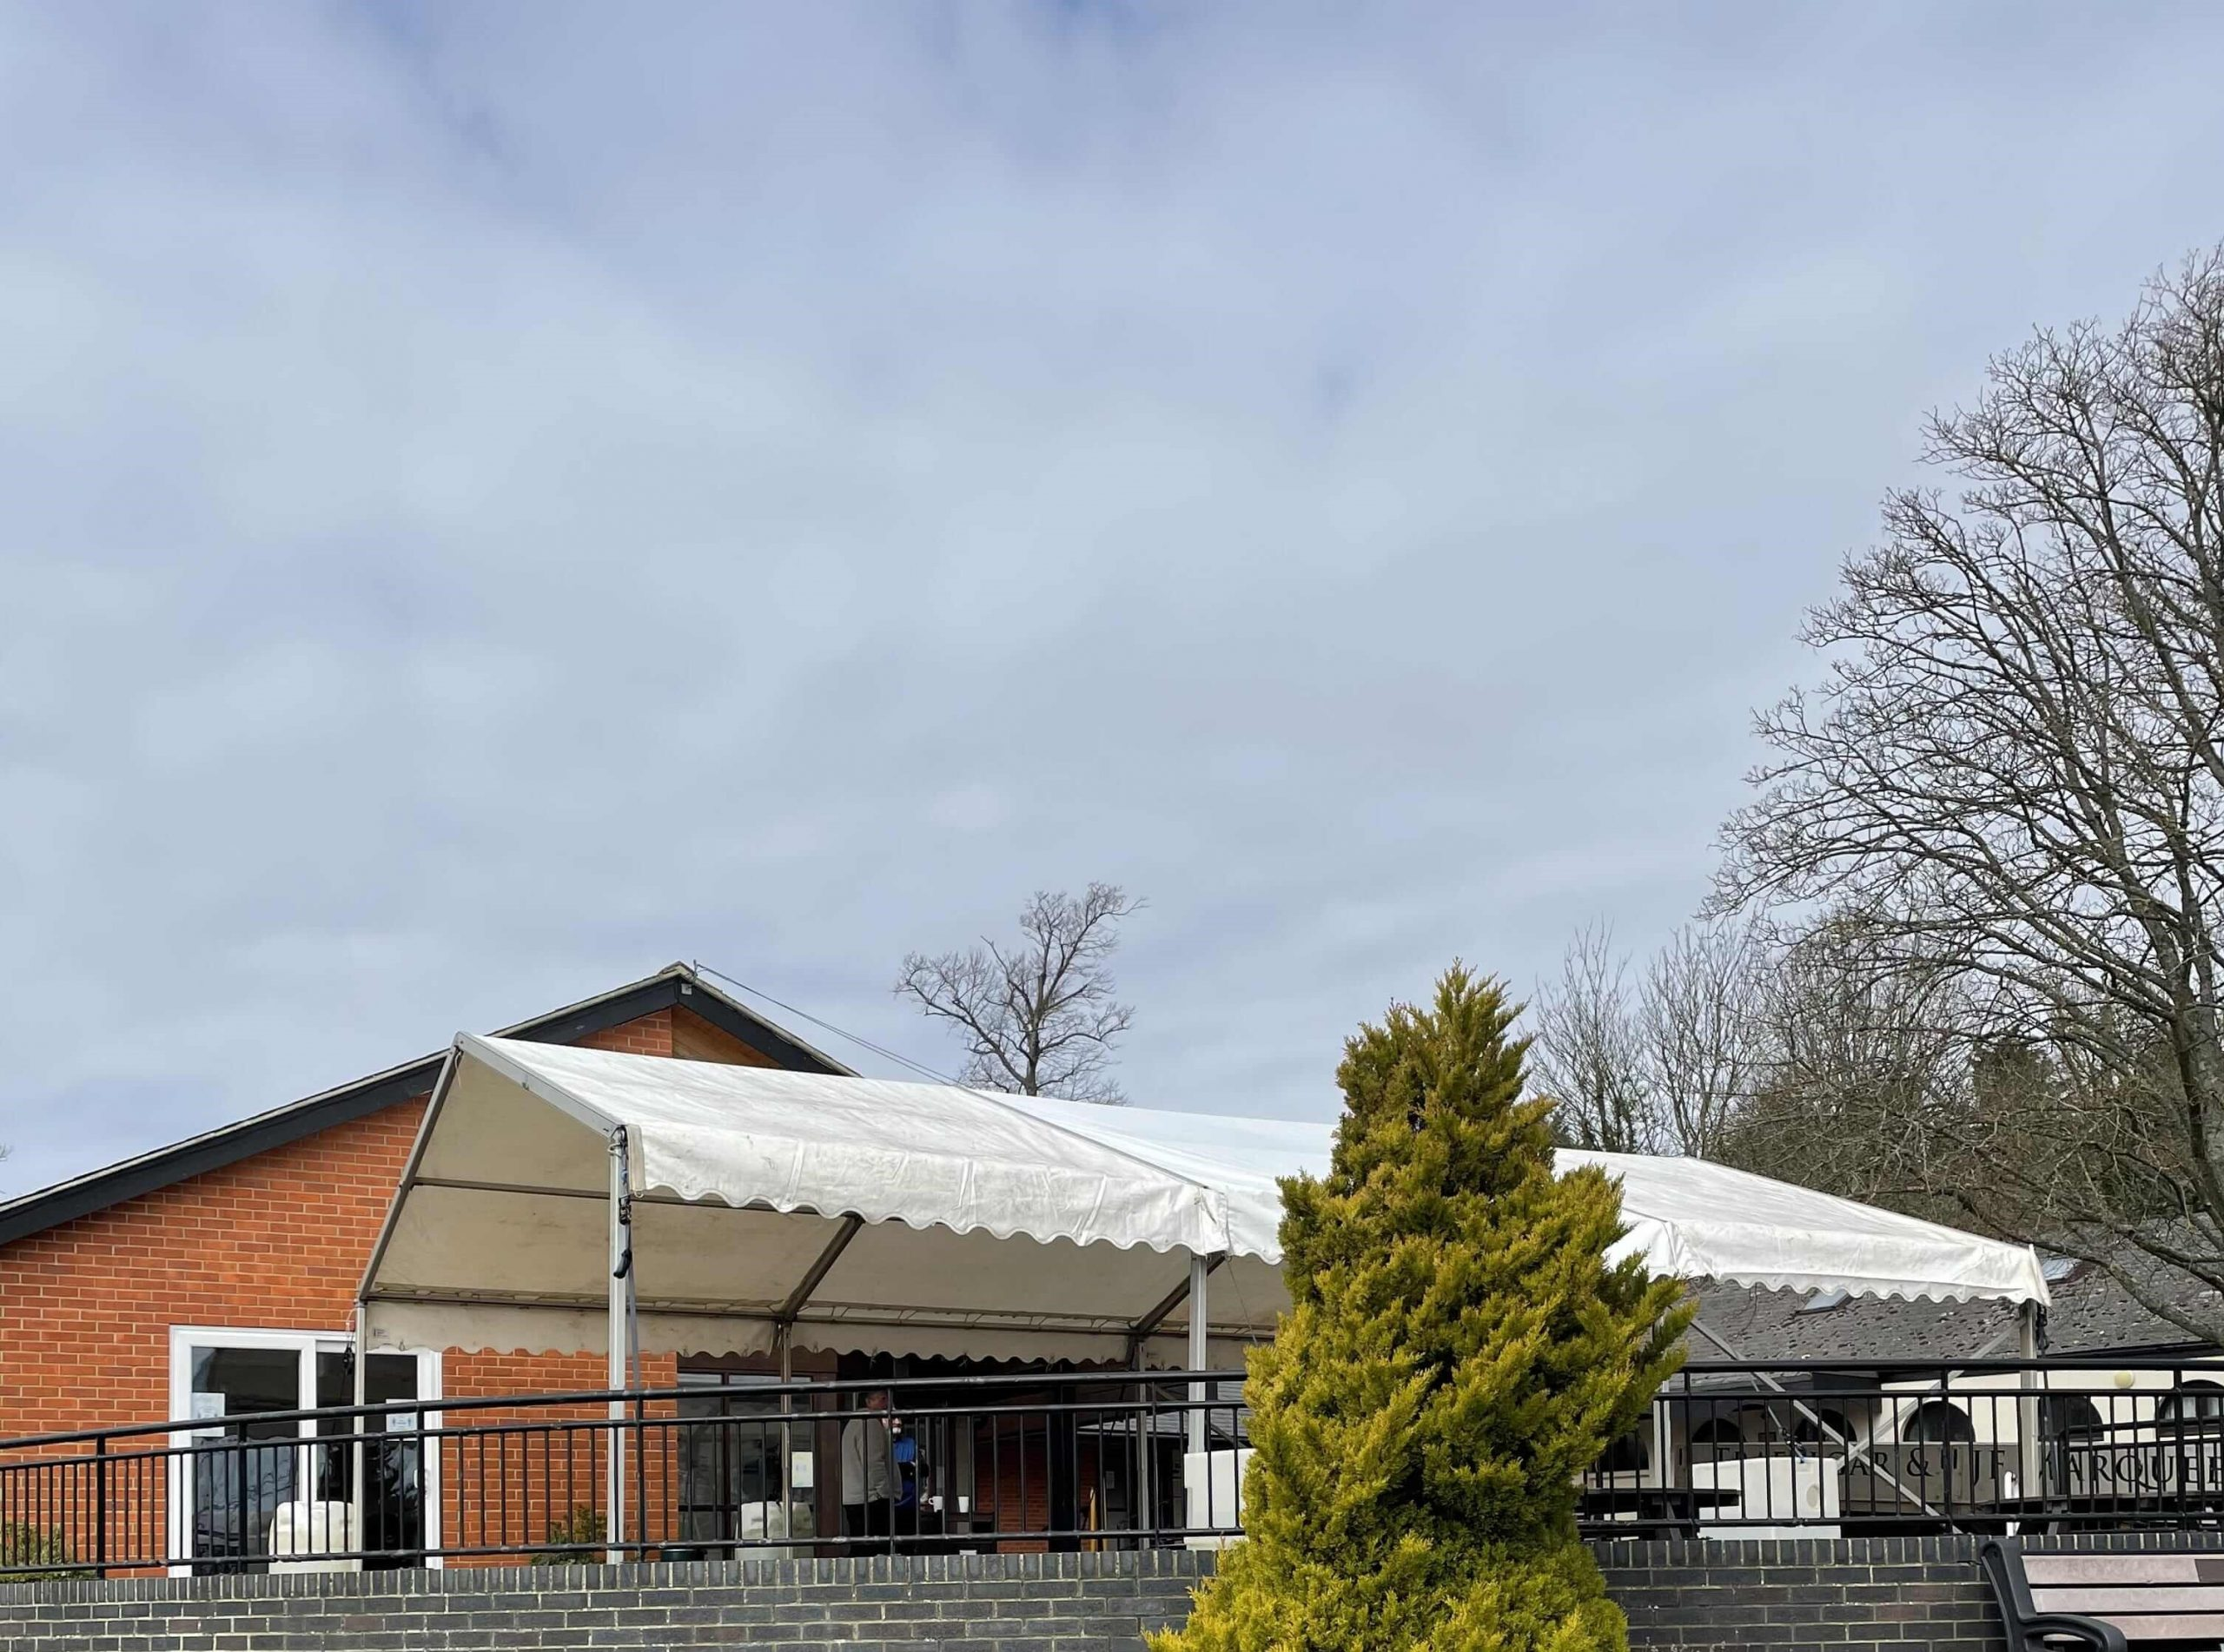 Marquee put up for extra space for Southwick Park Golf Club